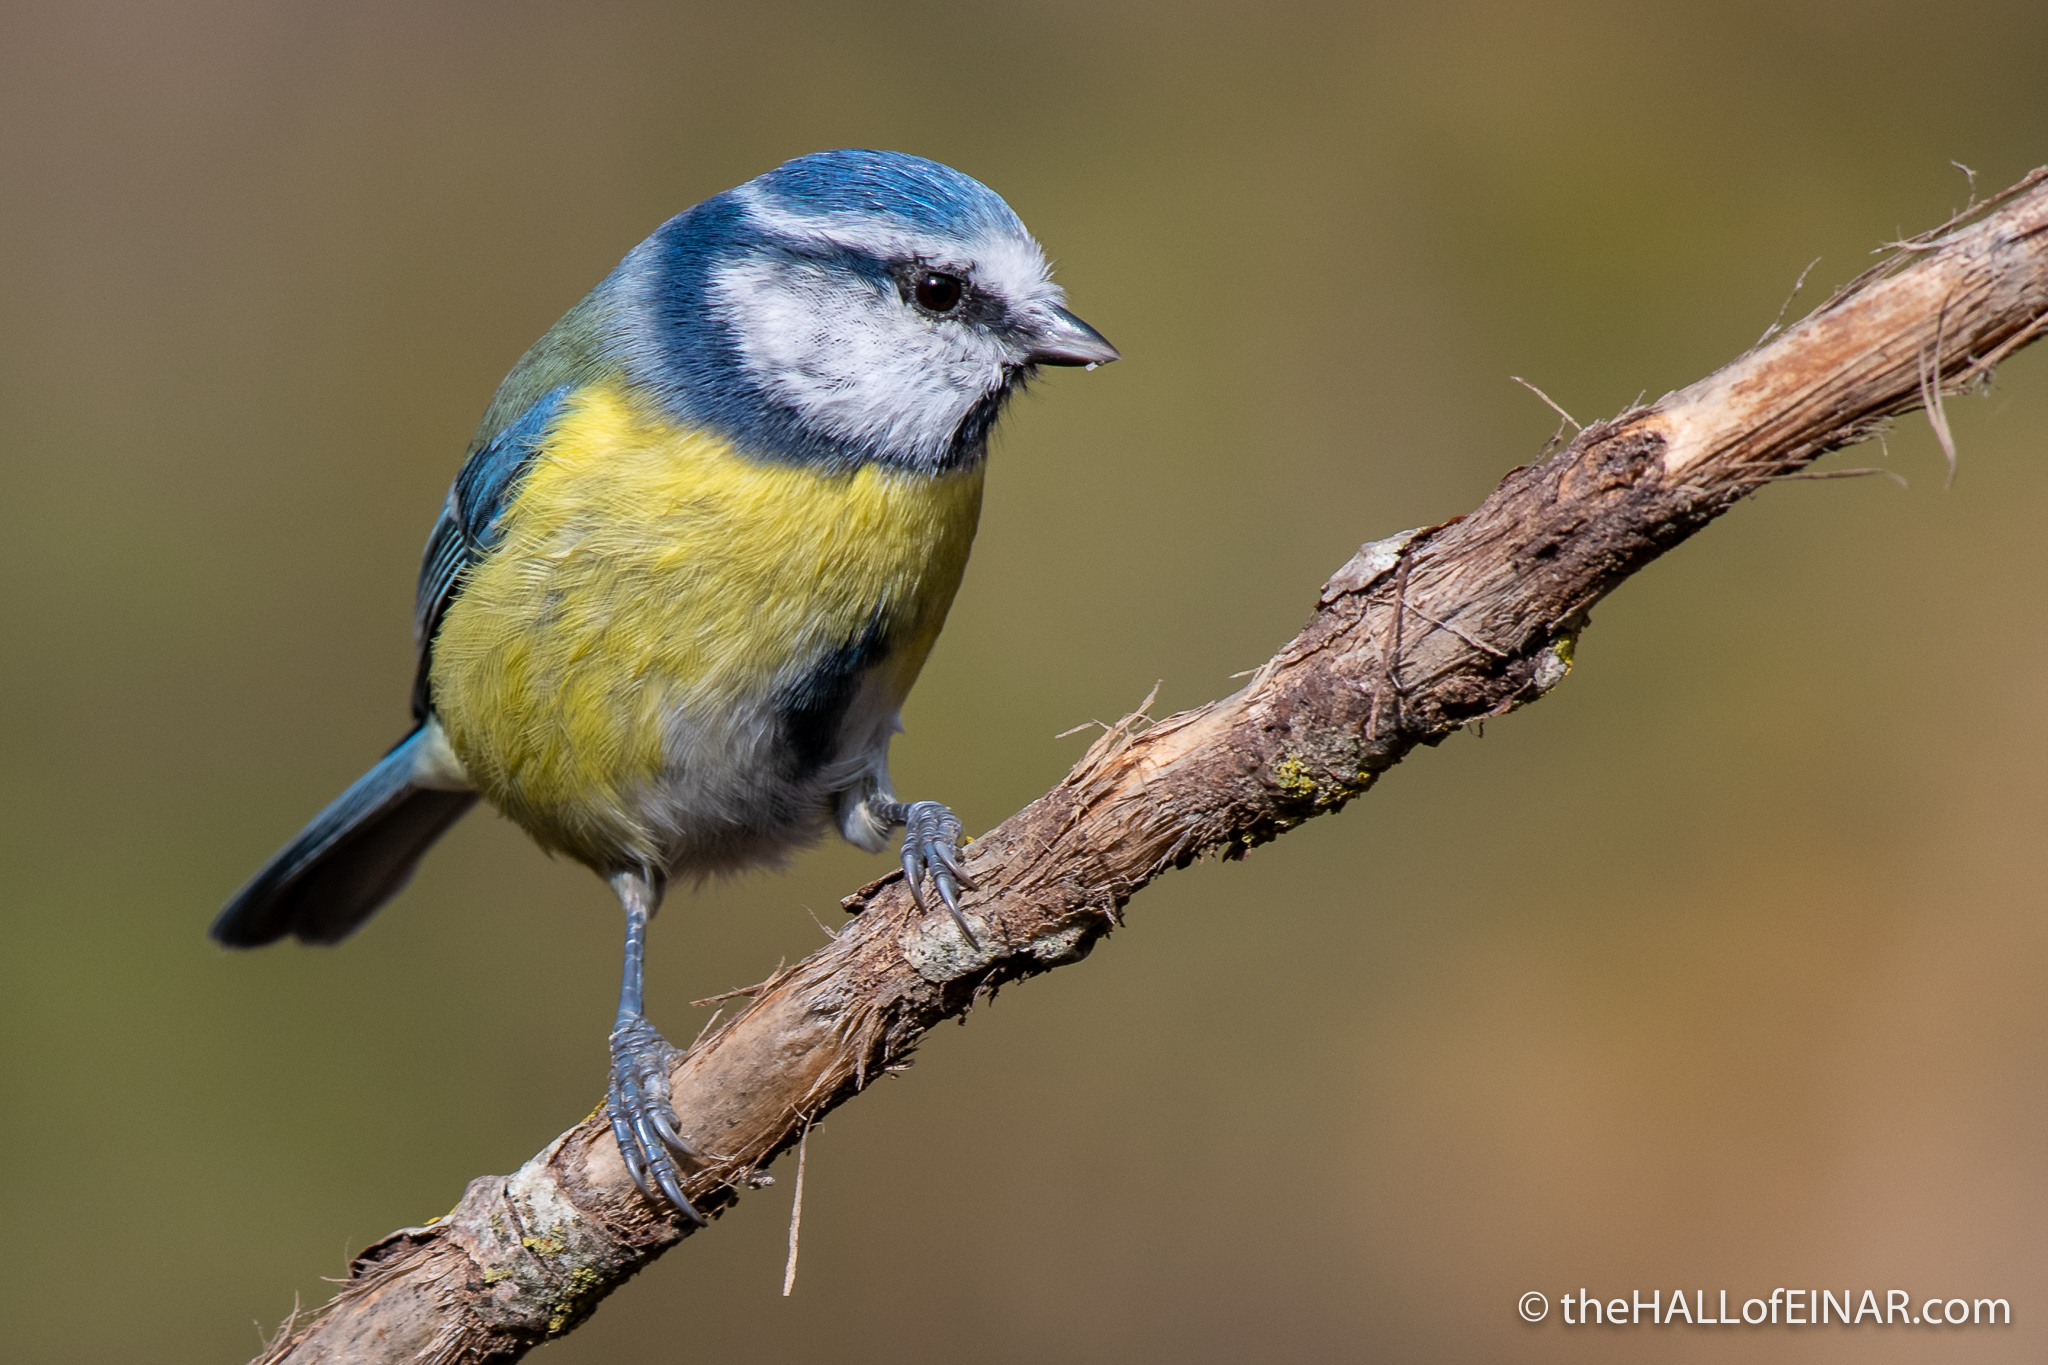 Blue Tit - Alviano - The Hall of Einar - photograph (c) David Bailey (not the)